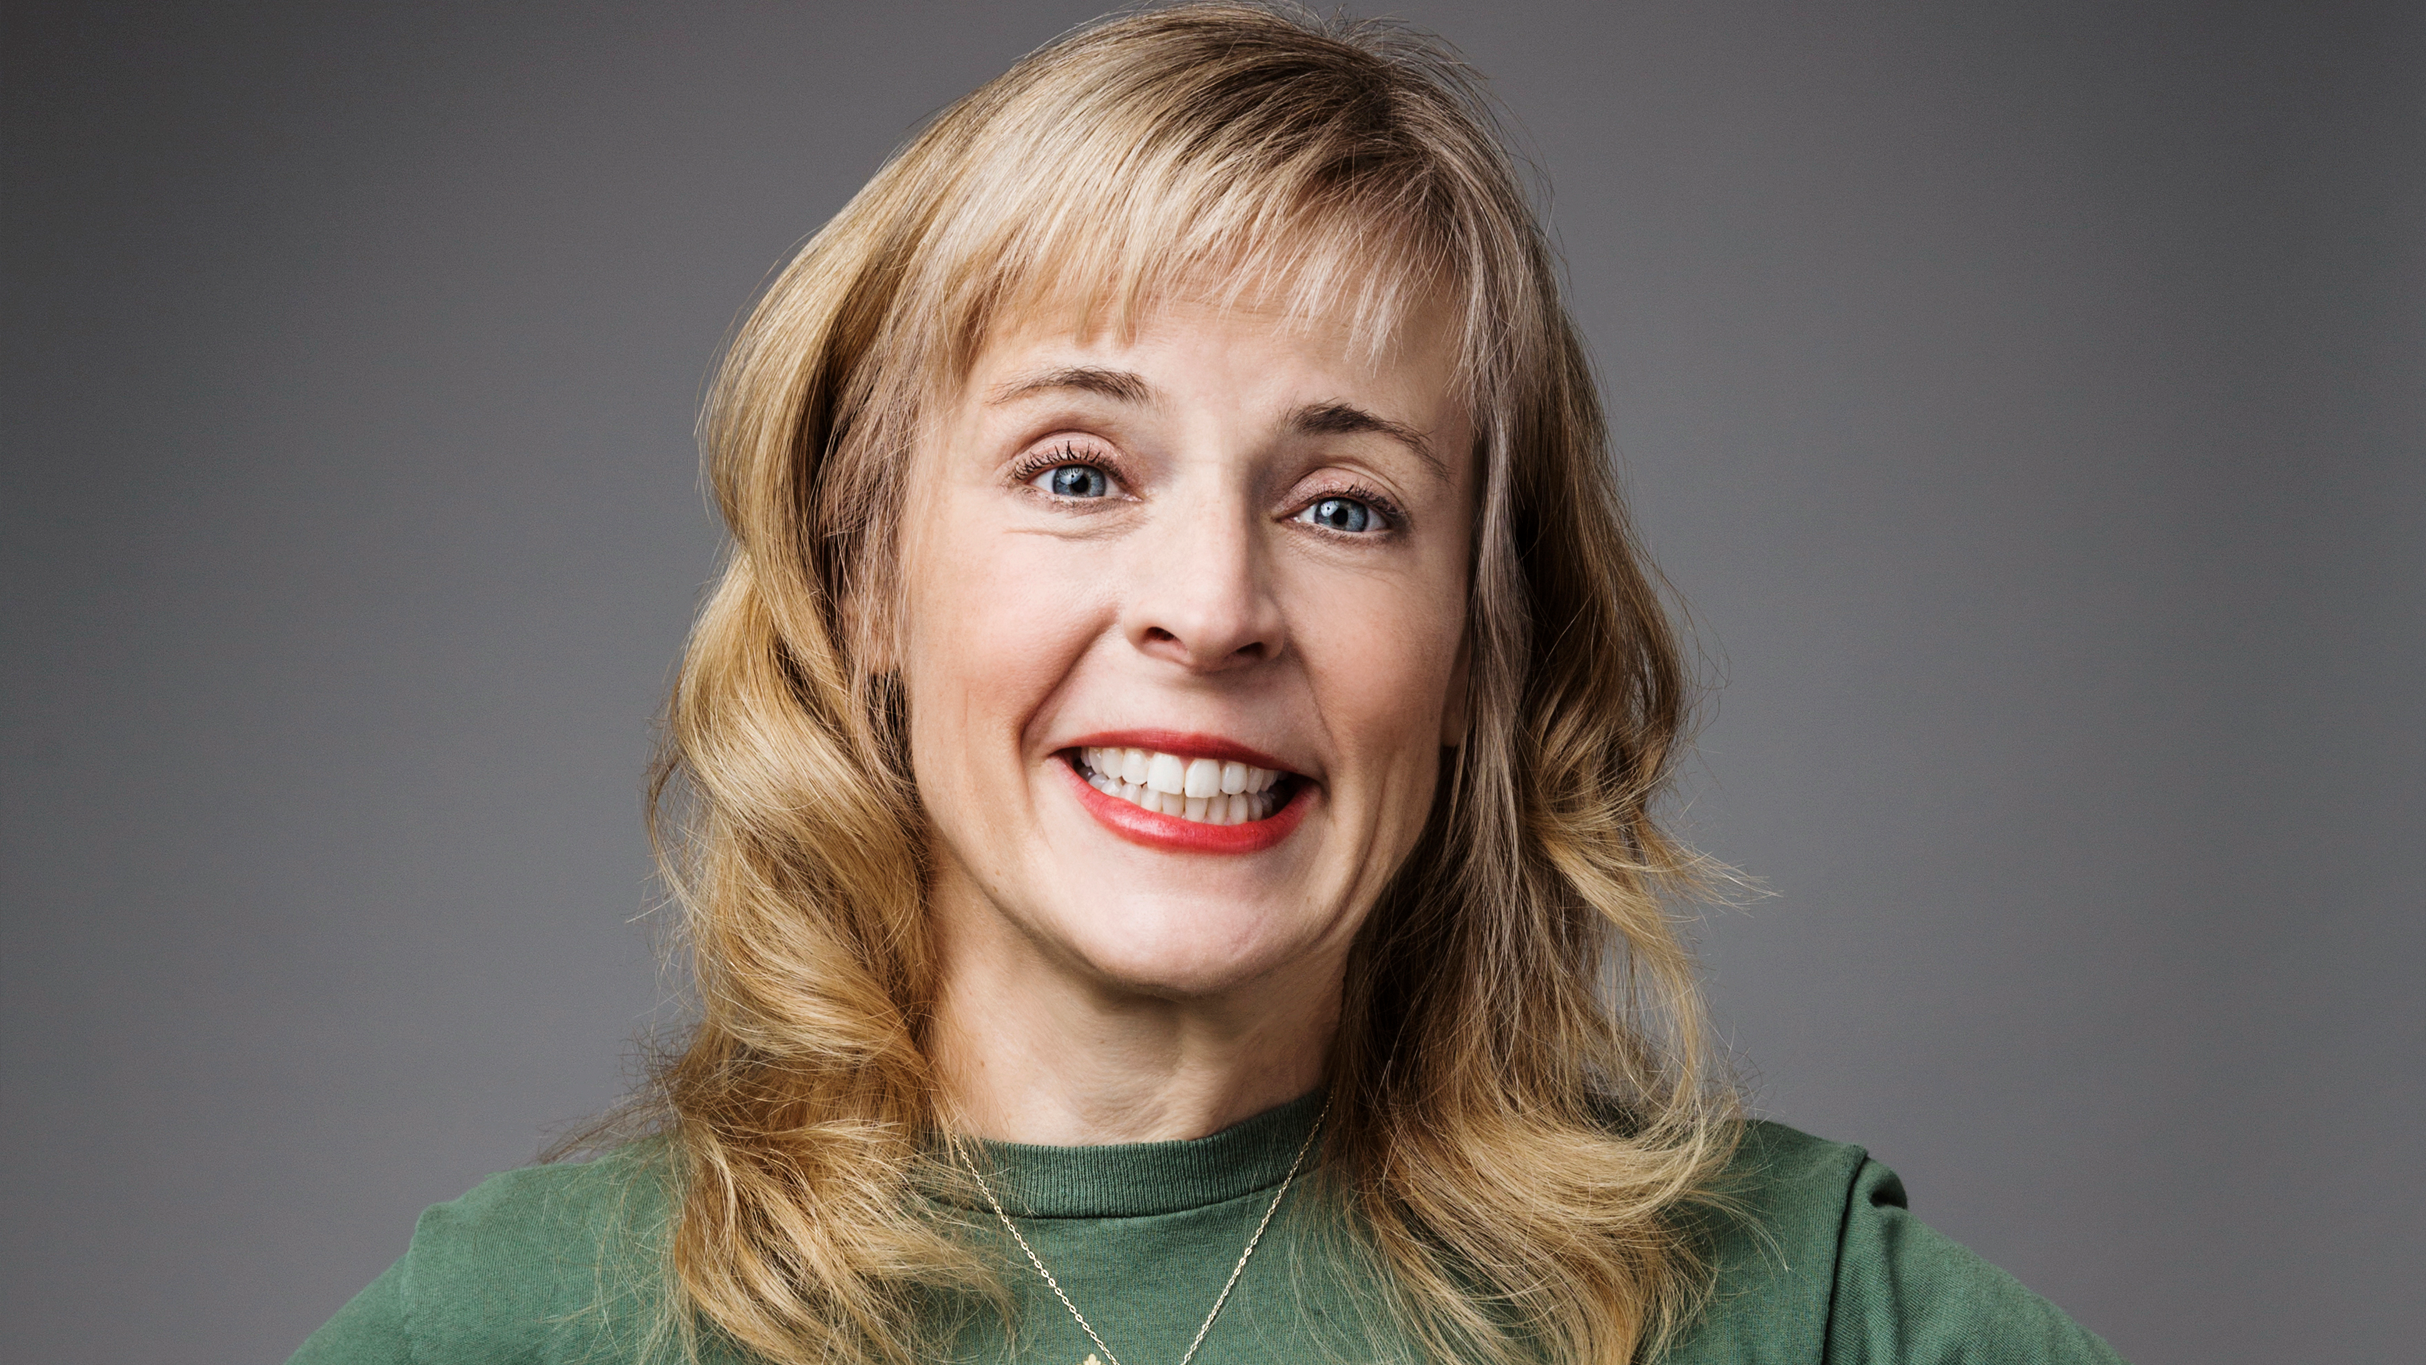 Maria Bamford. - Television star. Voiceover legend. Dedicated pug mom. And now, High Plains headliner.Maria will be joined by special guests Aparna Nancherla and Jackie Kashian for High Plains Comedy Festival's Headlining ShowSeptember 27 at Paramount Theatre • 8pmGET HEADLINER TICKETS HERE >>